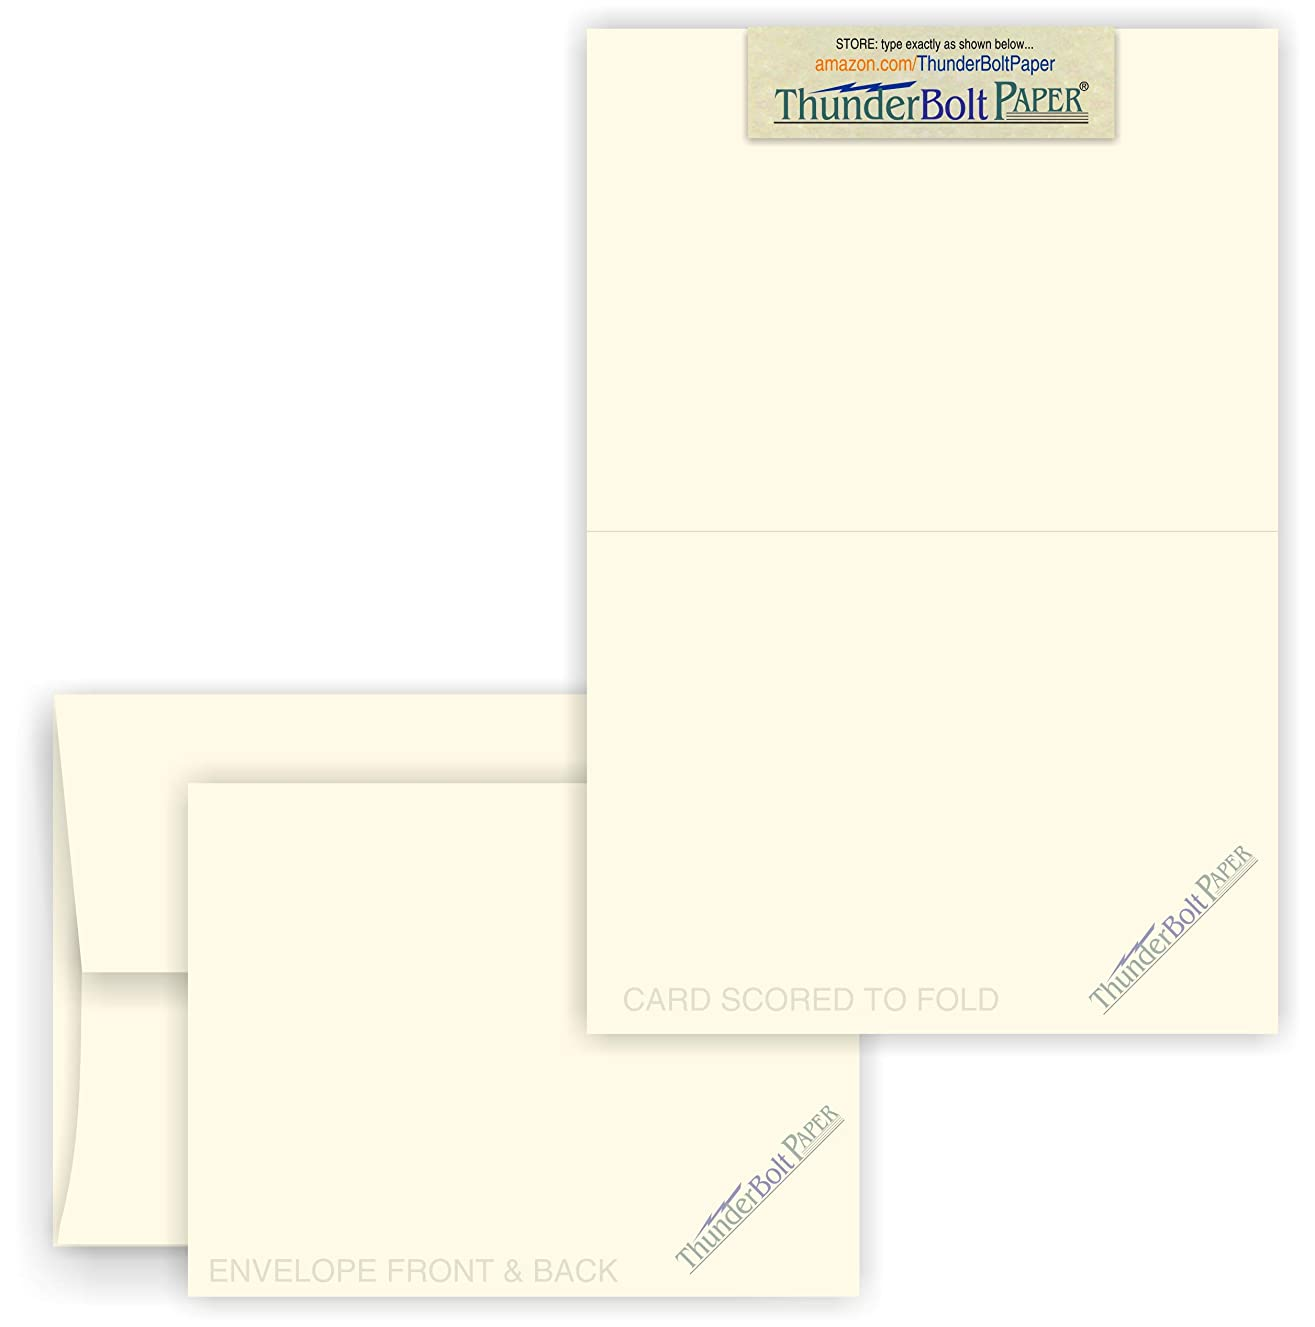 4X6 Folded Size with A-6 Envelopes - Natural Smooth - 50 Sets (6X8 Cards Scored to Fold in Half) Matching Pack - Invitations, Greeting, Thank You, Notes, Holidays, Weddings, Birthdays, Announcements